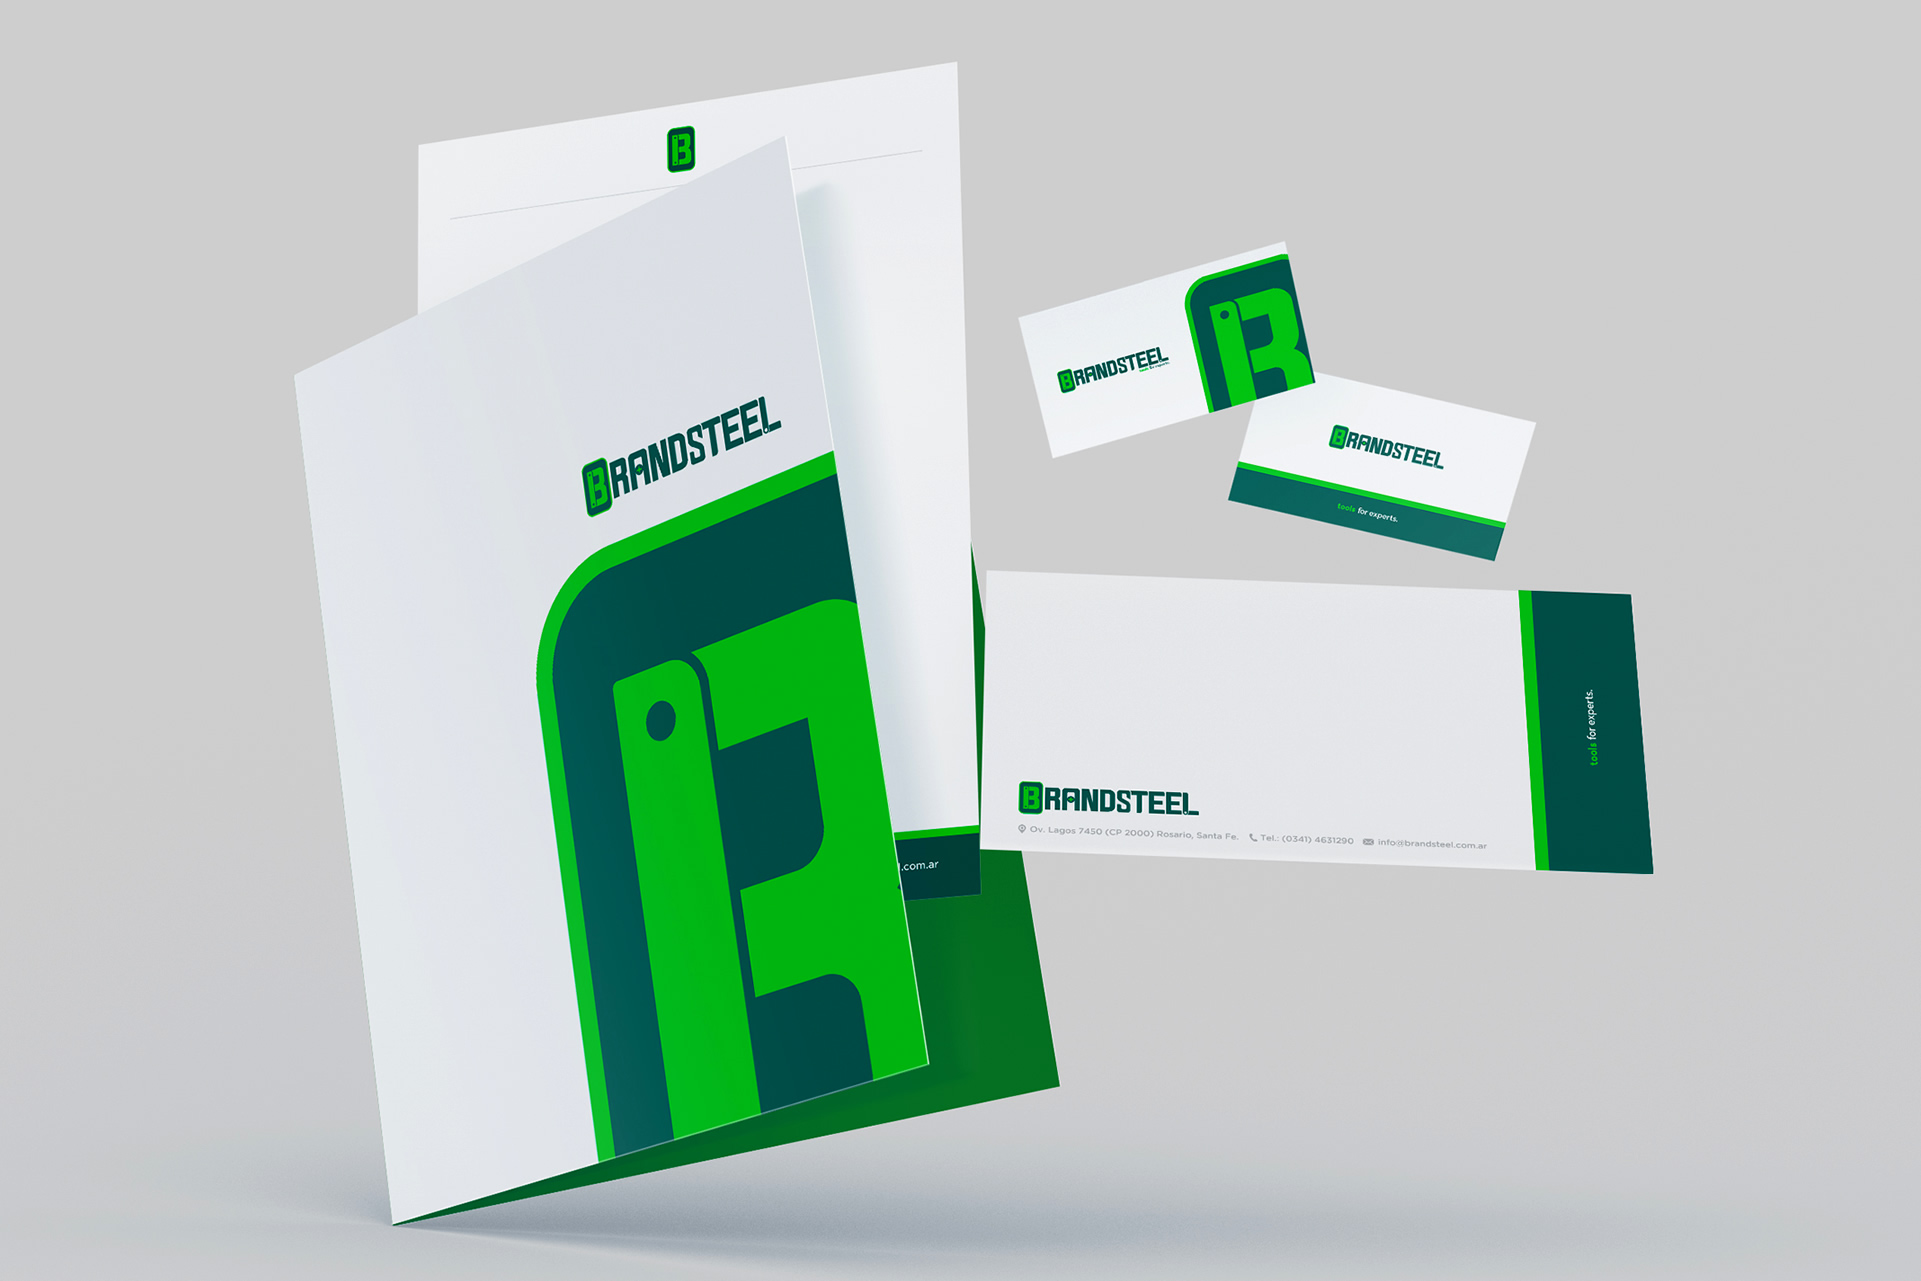 Identidad Visual. Branding. Diseño Gráfico. Packaging. Stands. Dattasmart